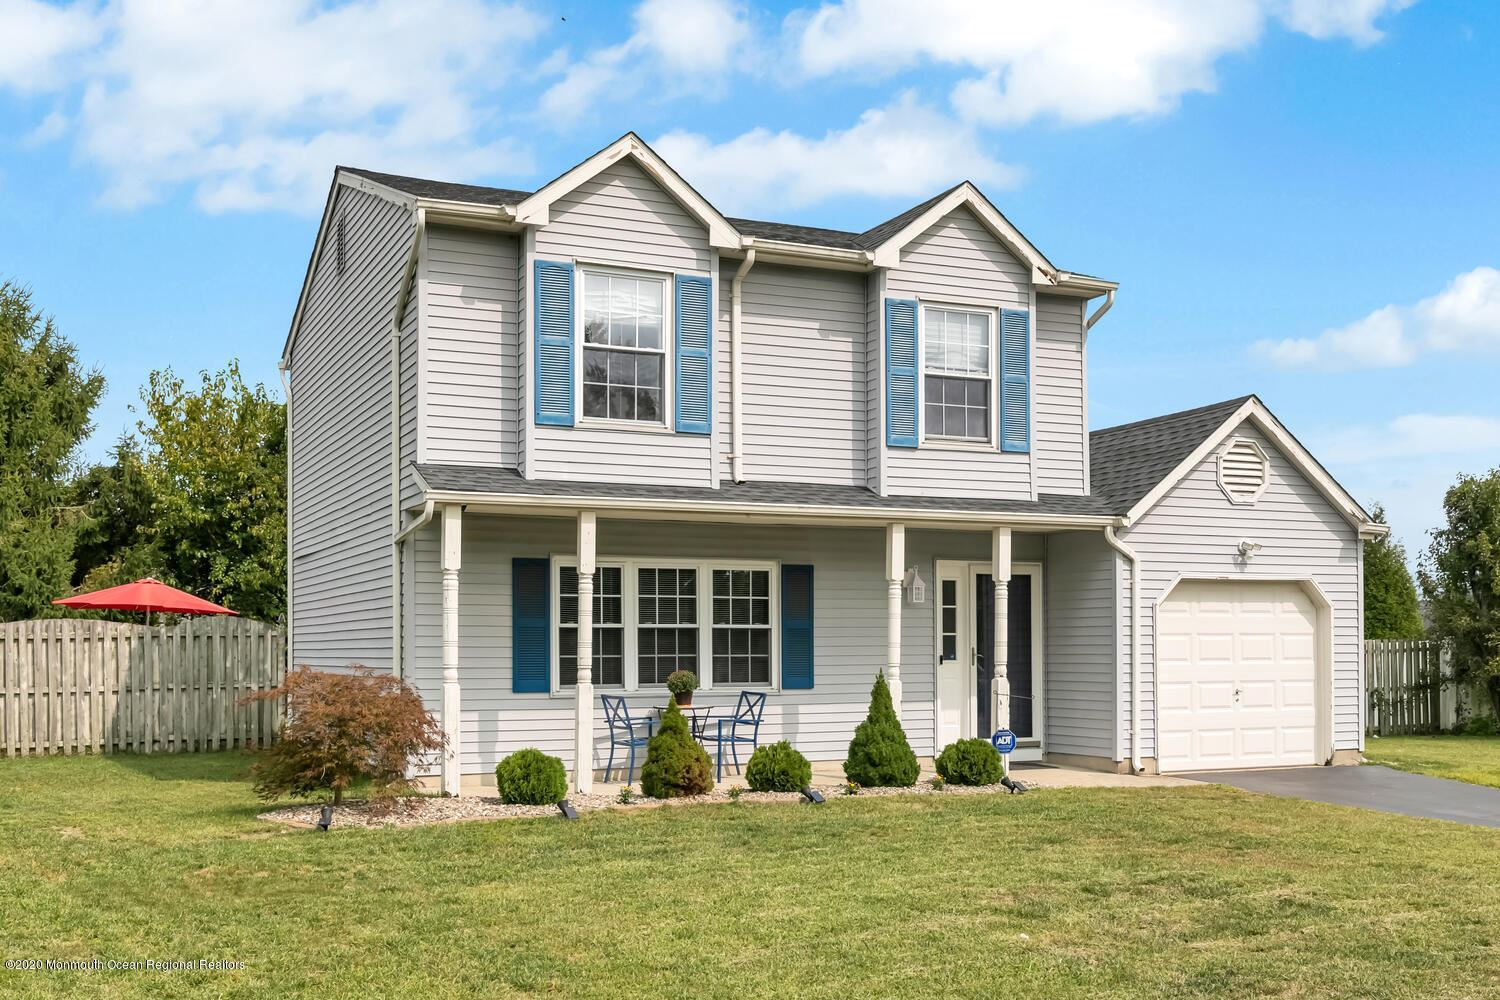 3 Albatross Drive, Howell, NJ 07731 - MLS#: 22033309